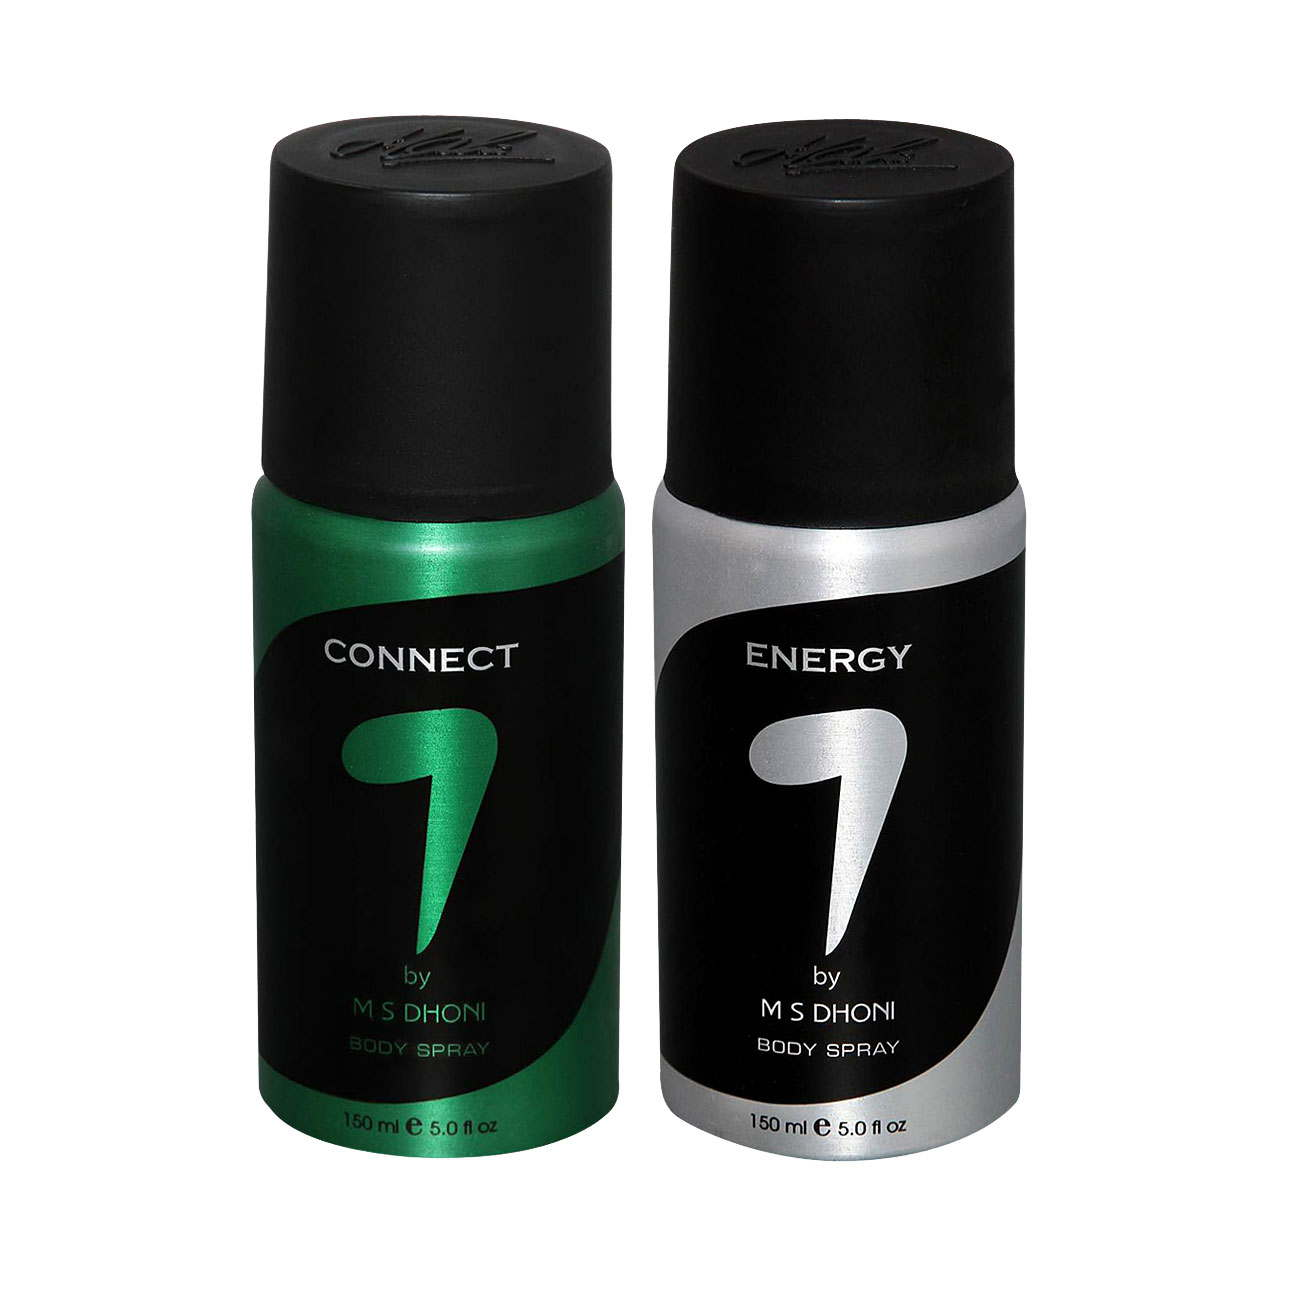 7 by MS Dhoni Connect, Energy Pack of 2 Deodorants